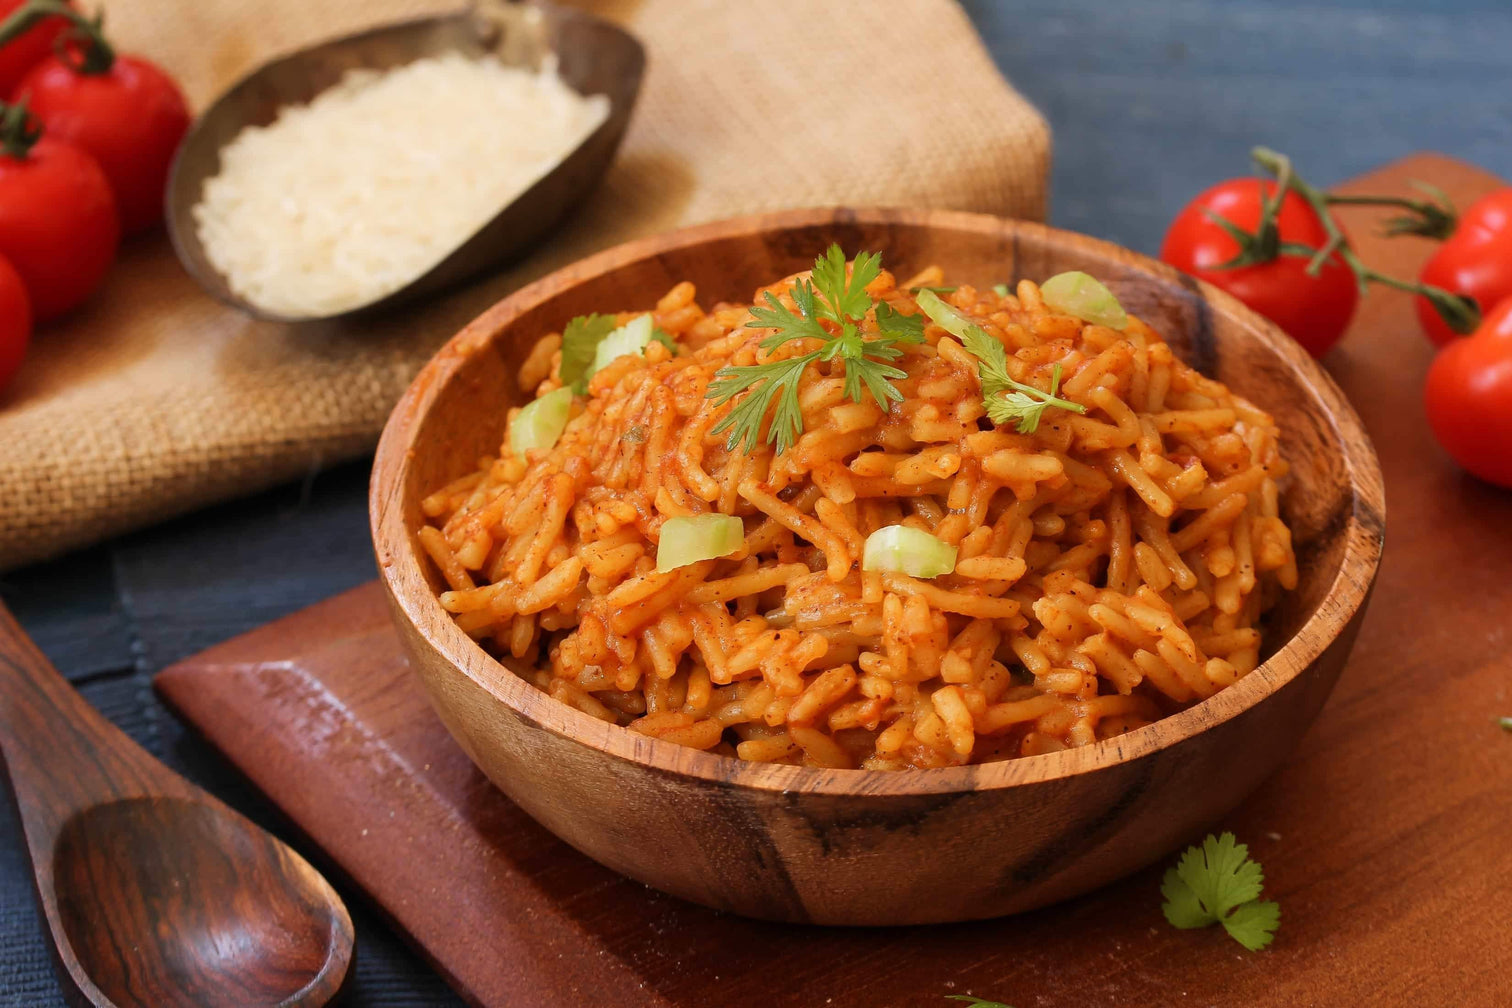 Savory Spanish rice in a bowl made with paprika